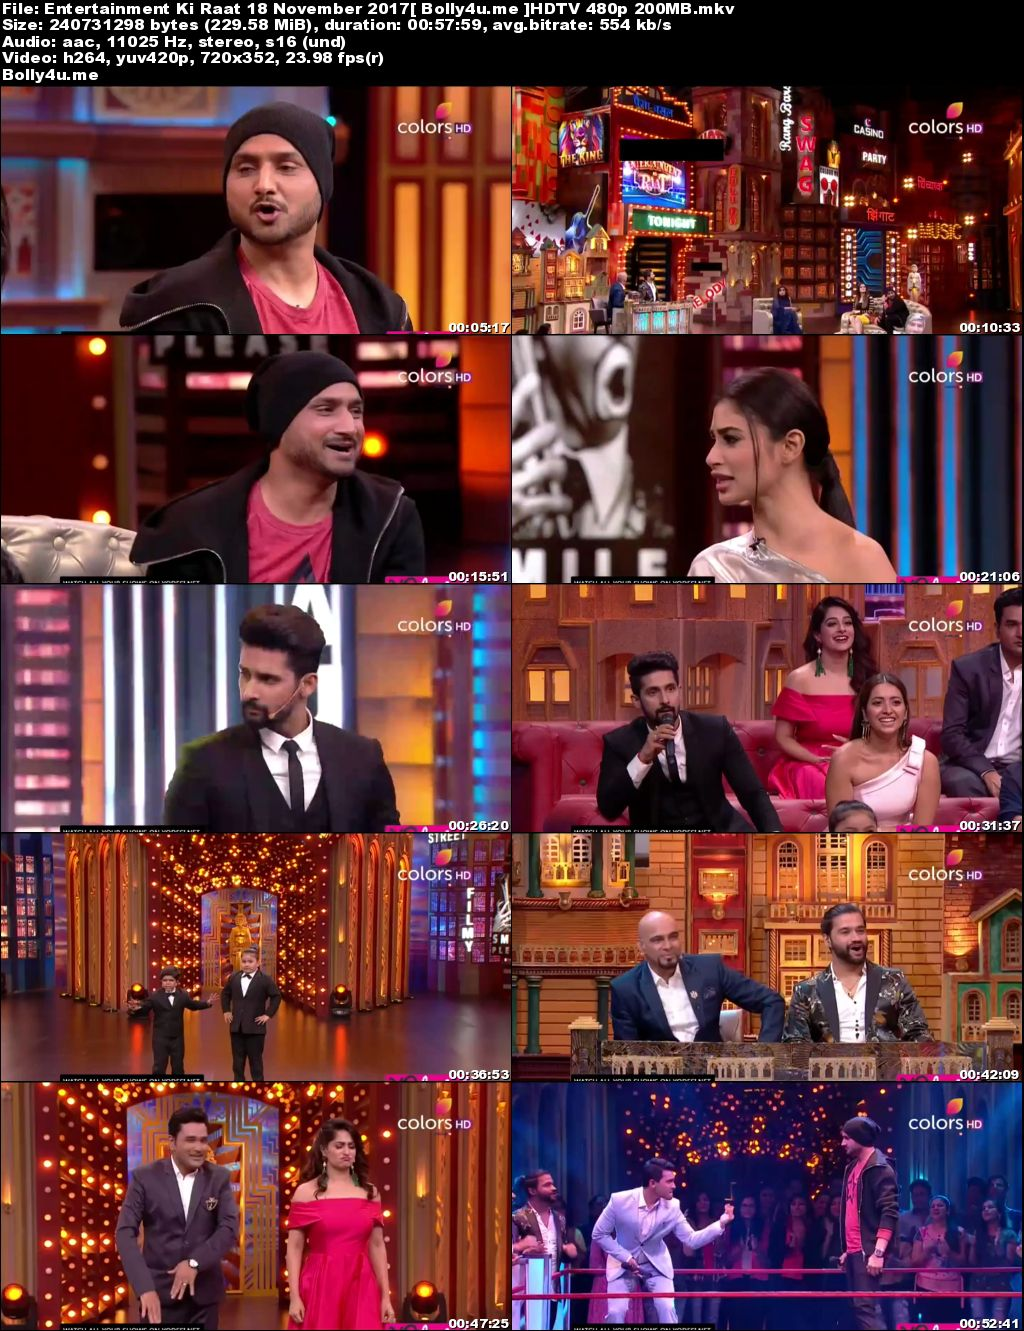 Entertainment Ki Raat HDTV 480p 200MB 18 November 2017 Download